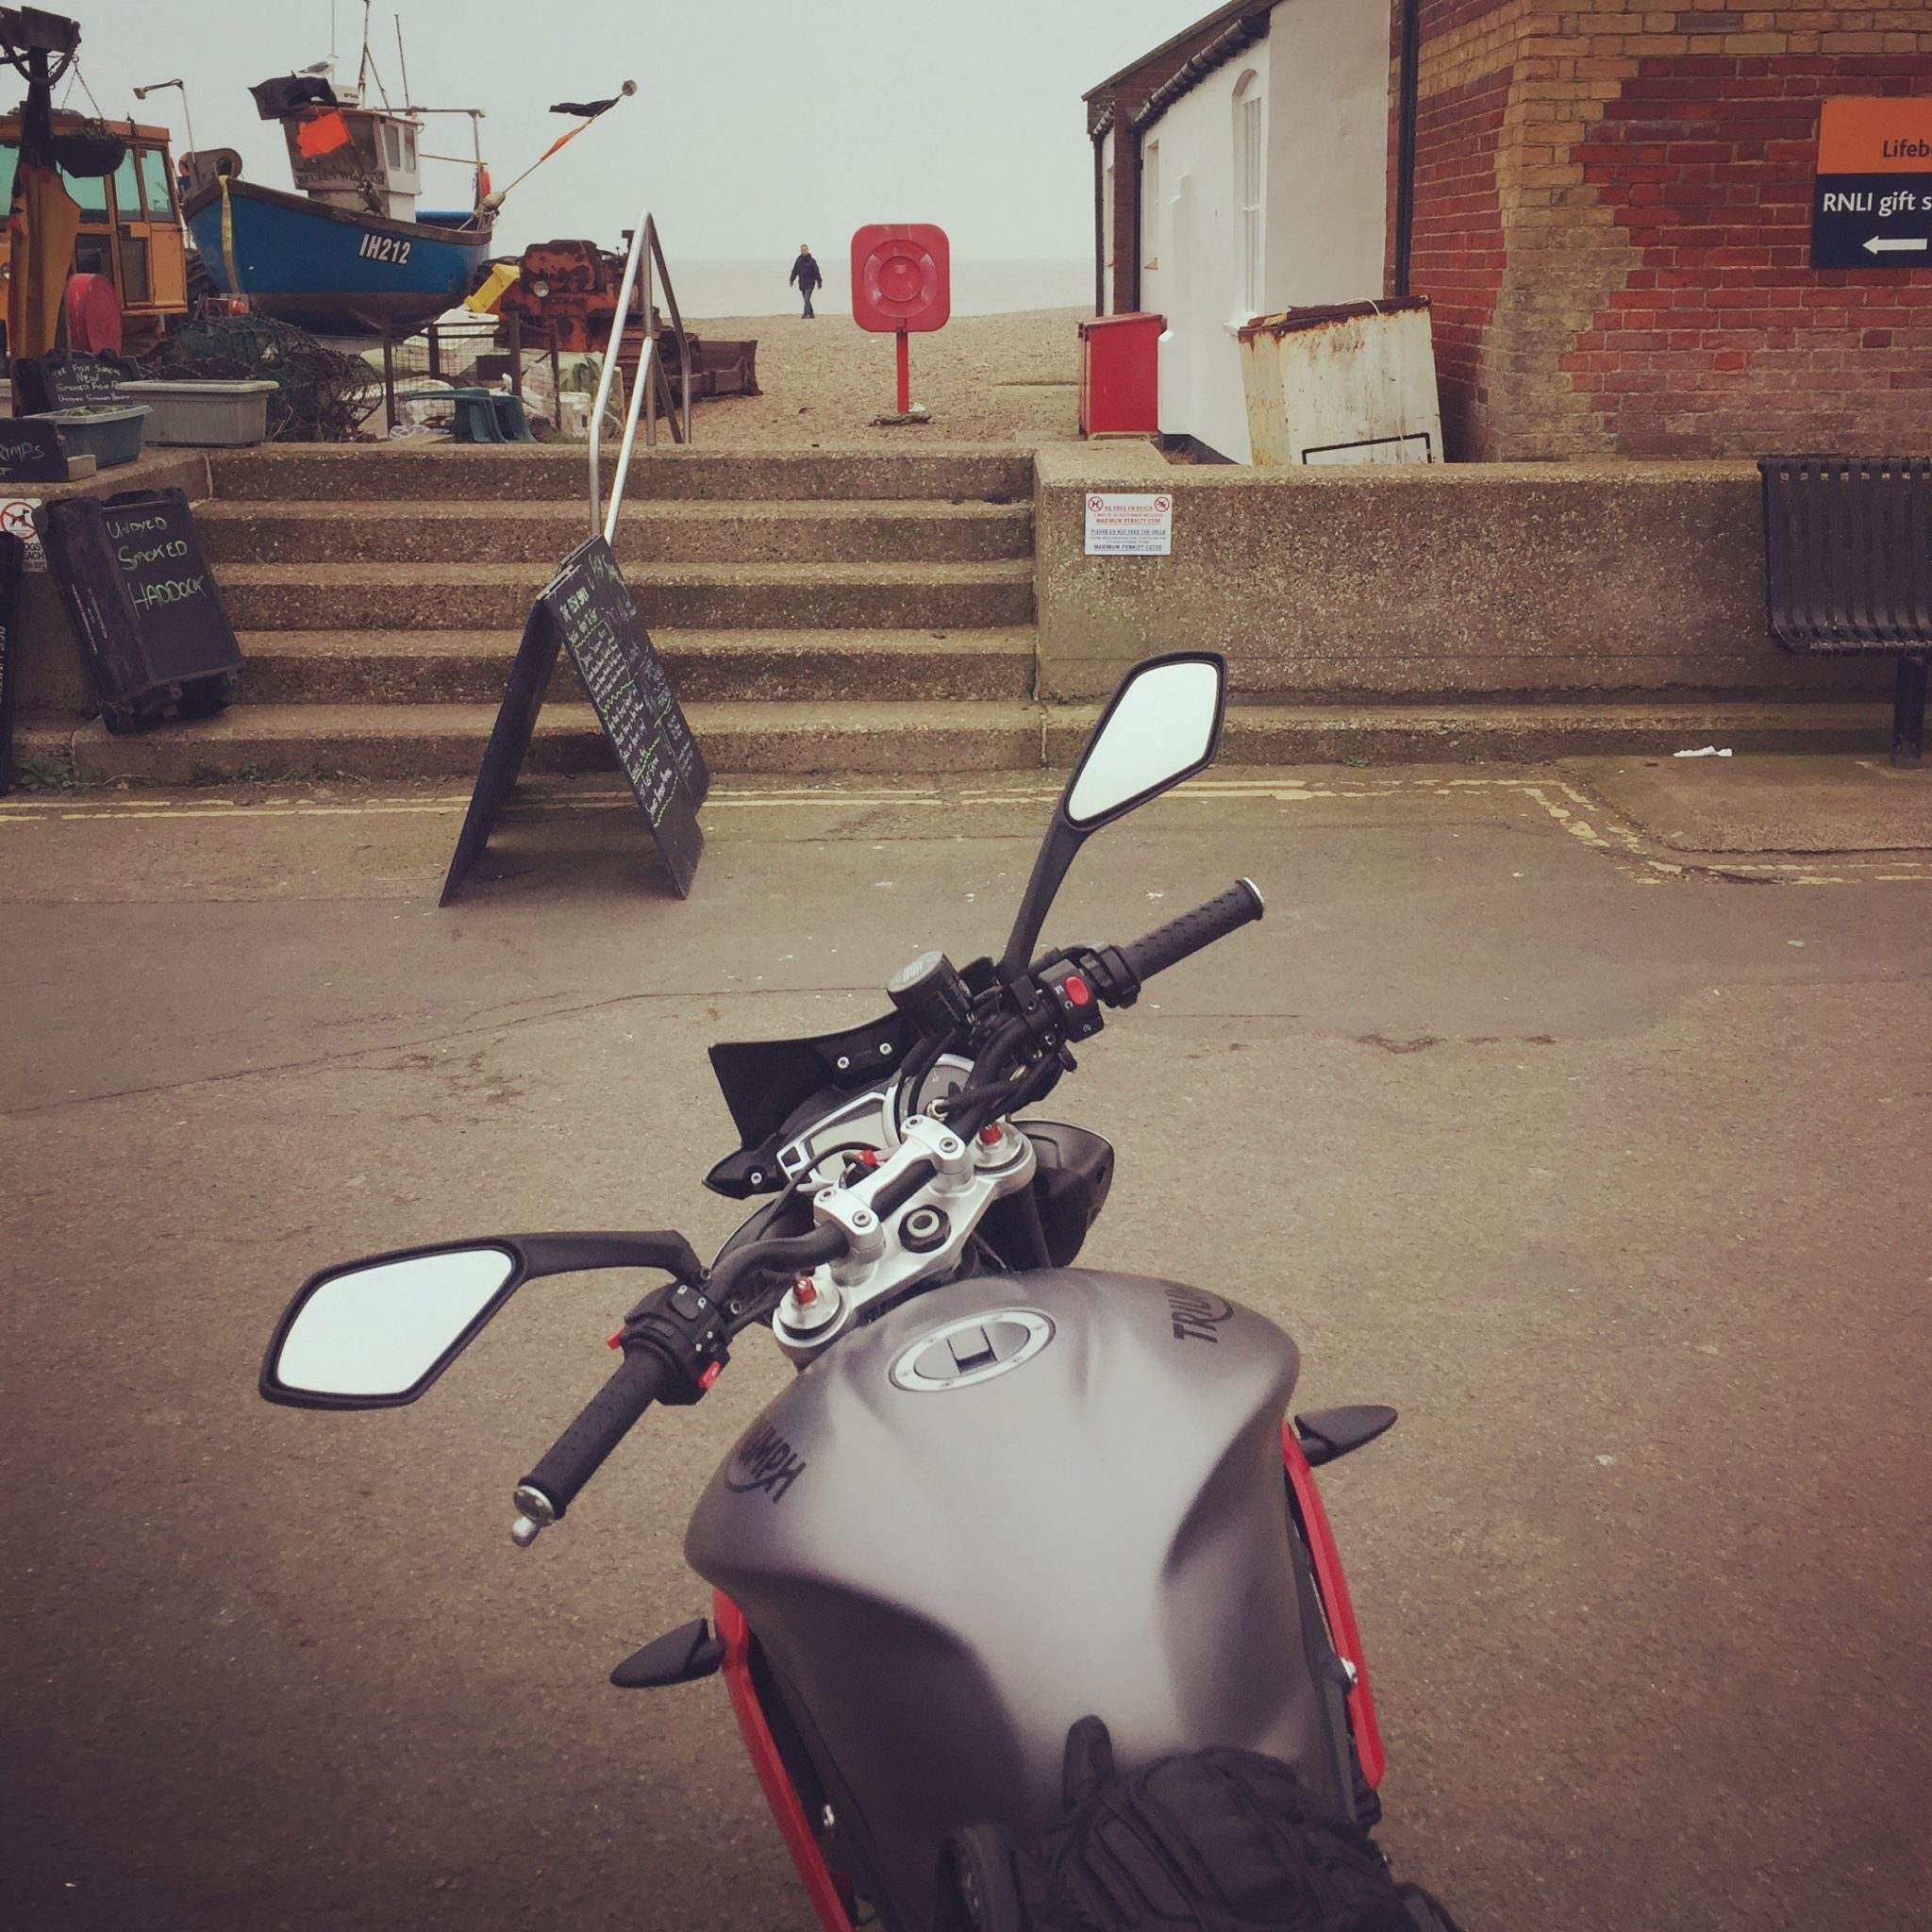 Paul Groves – Triumph Street Triple R 2